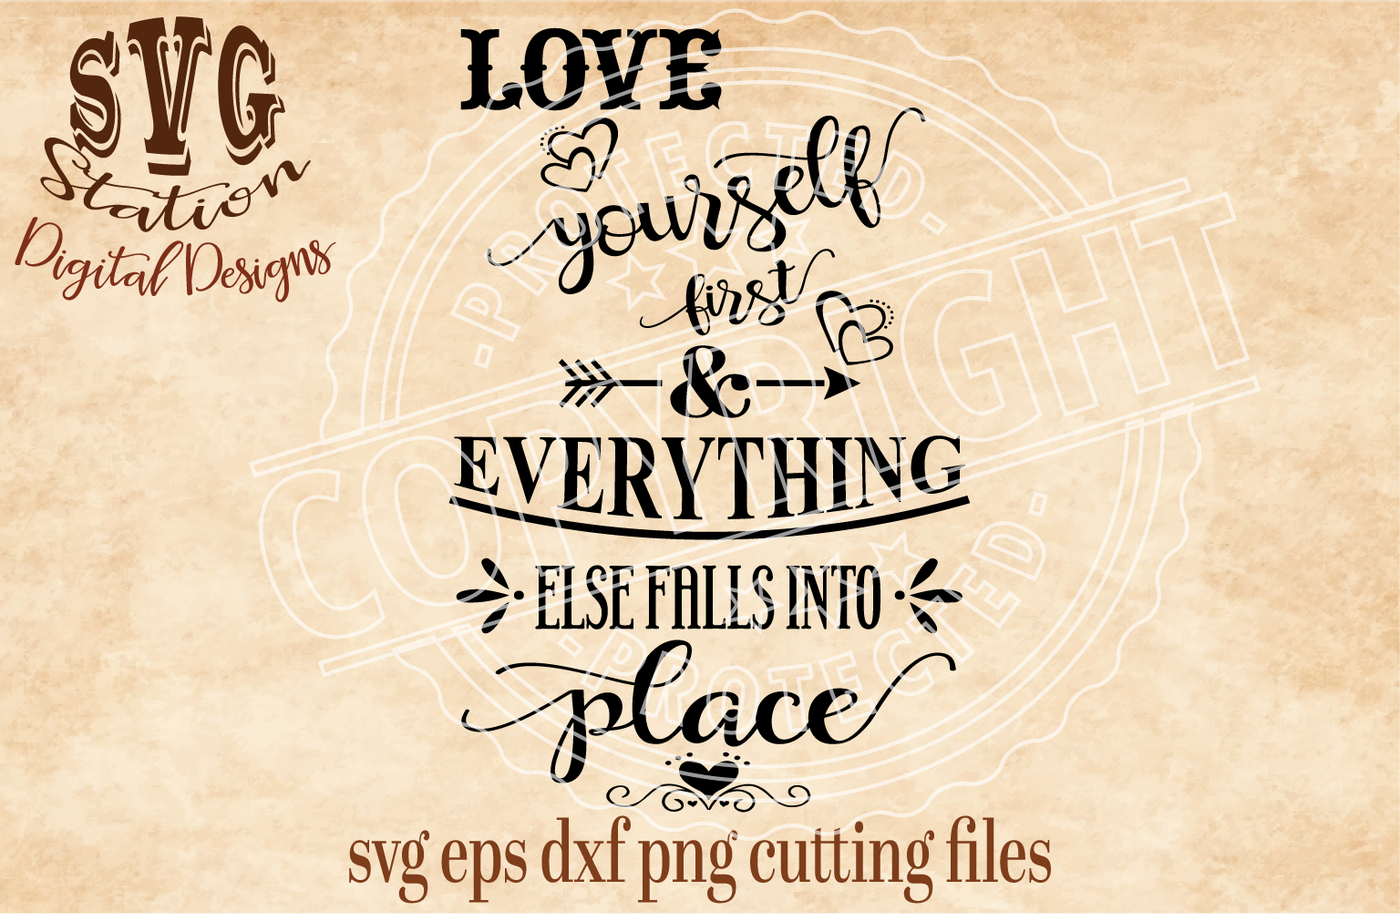 Love Yourself First And Everything Else Falls Into Place Svg Dxf Png Eps Cutting File Silhouette Cricut By Svg Station Thehungryjpeg Com